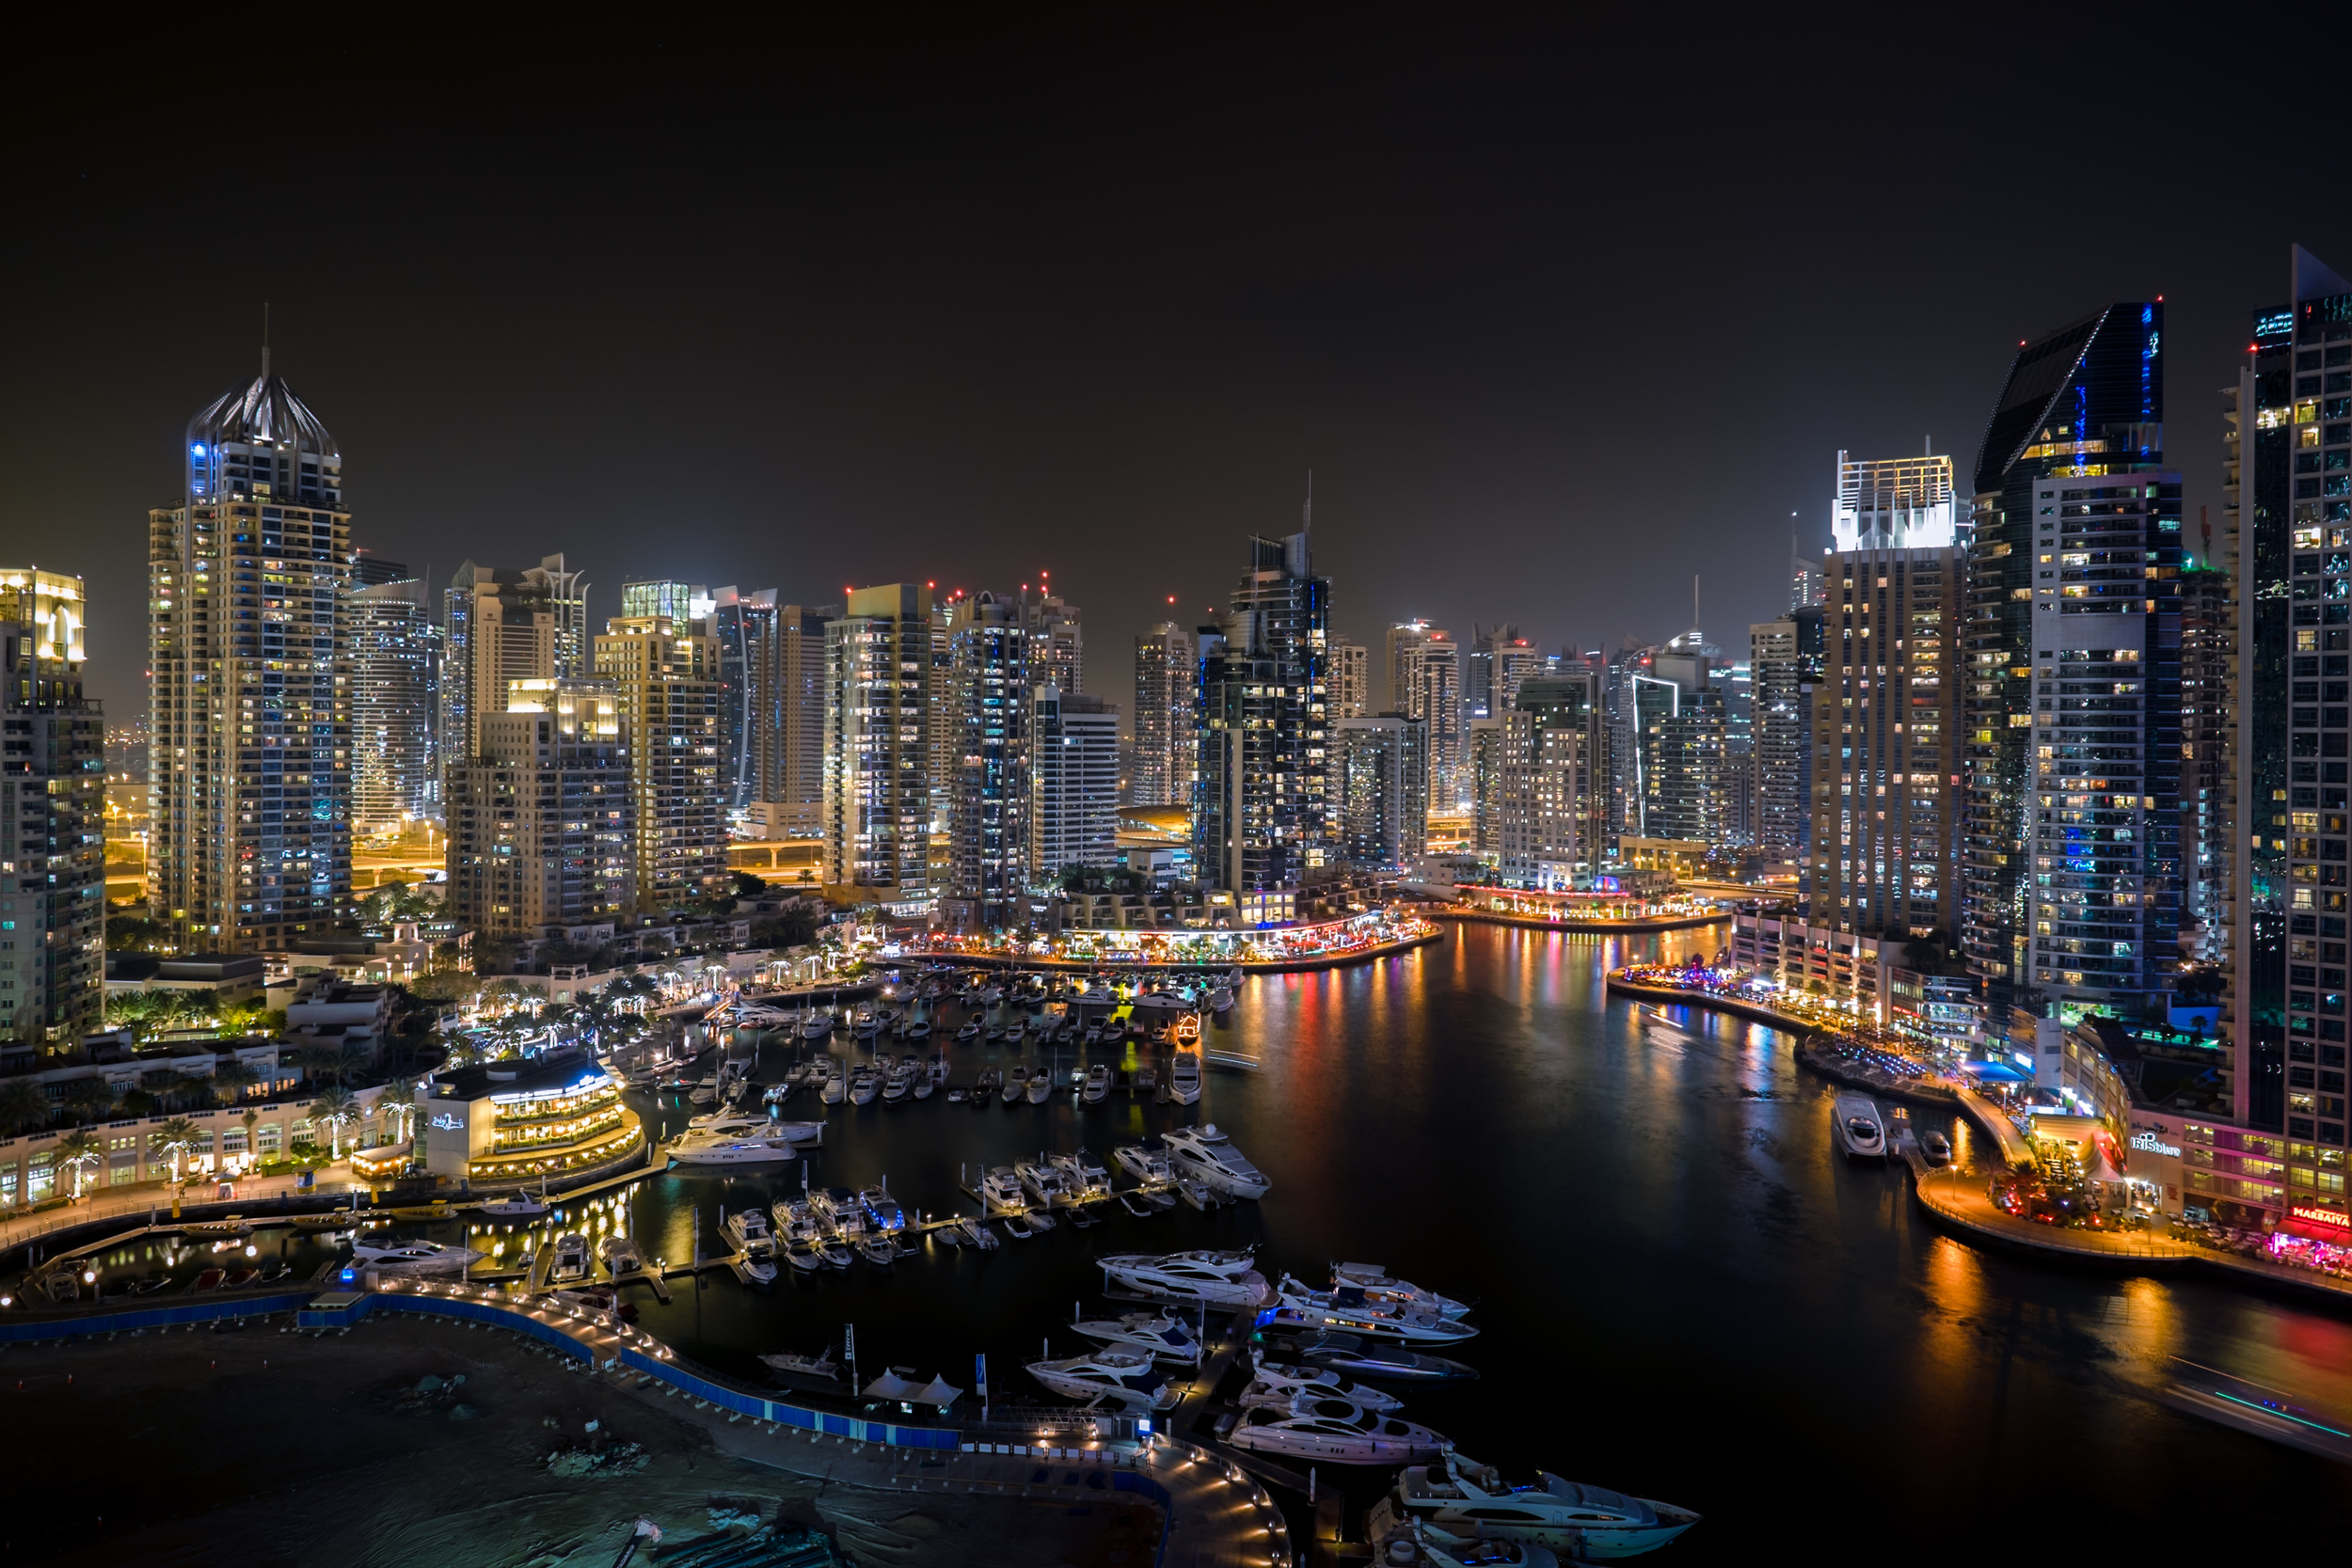 """My usual """"first shot"""" with any new camera/lens. The Dubai Marina from my balcony (Click to enlarge)"""